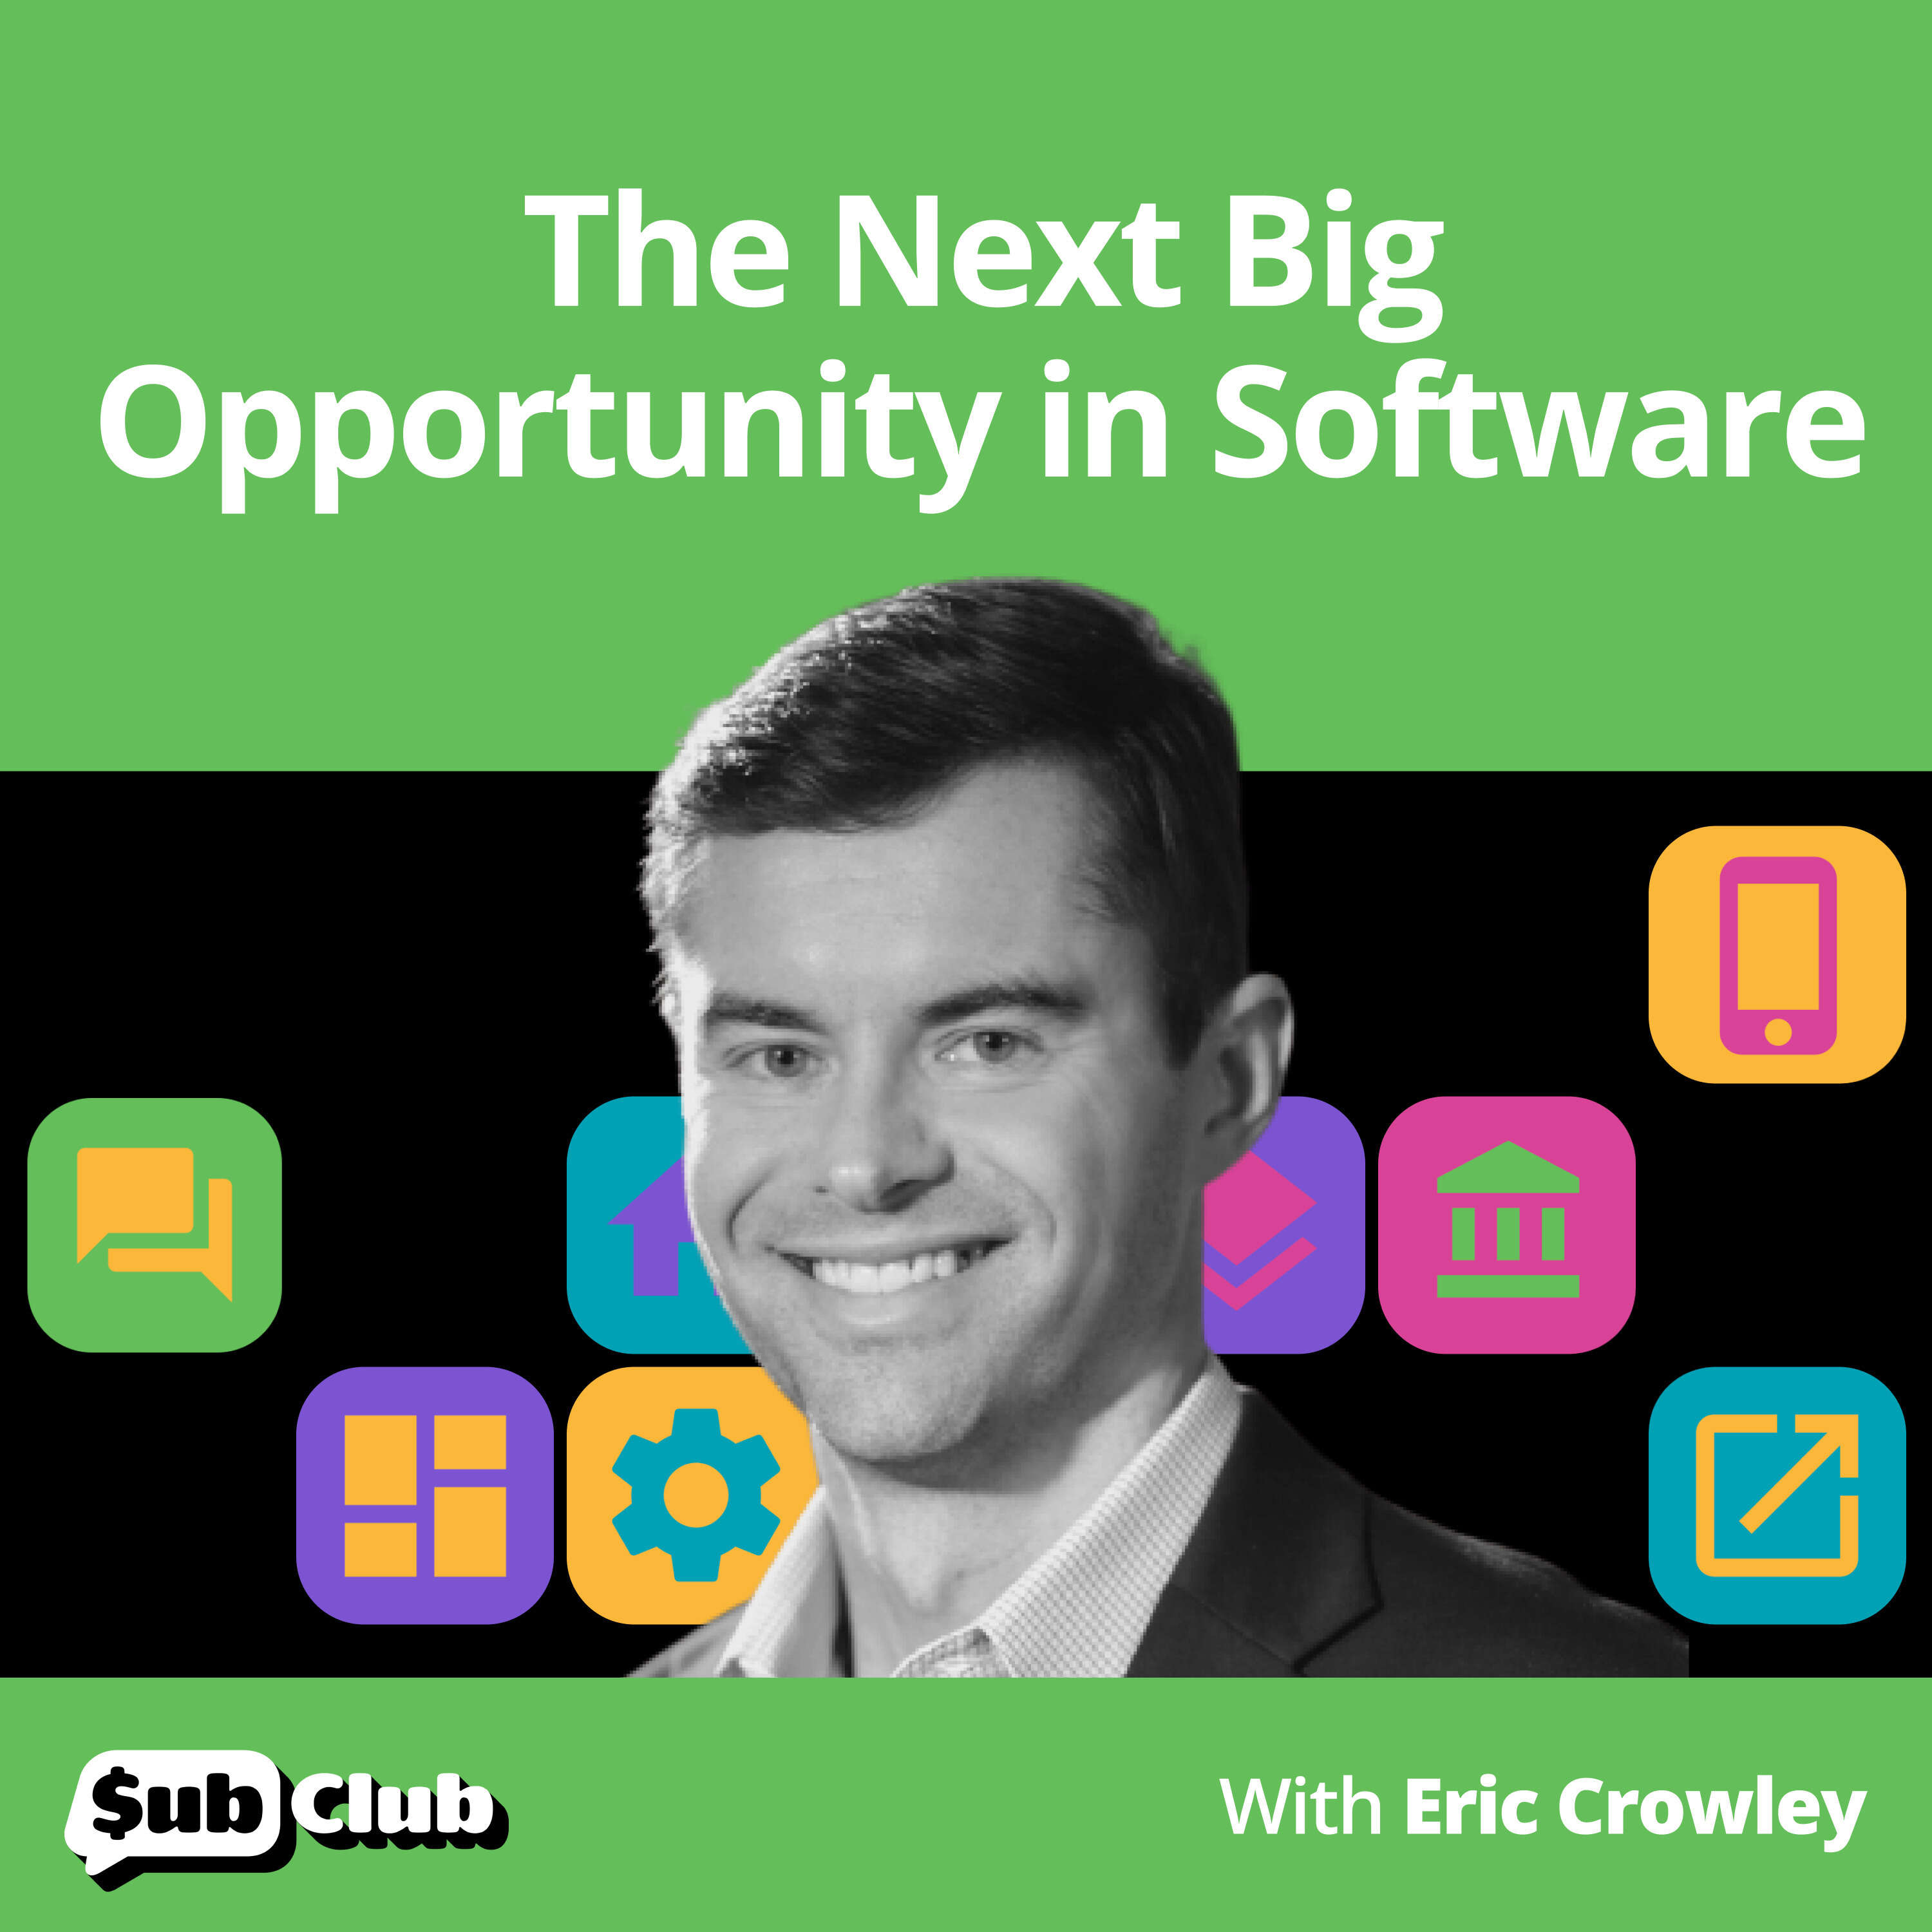 Eric Crowley, GP Bullhound - The Next Big Opportunity in Software